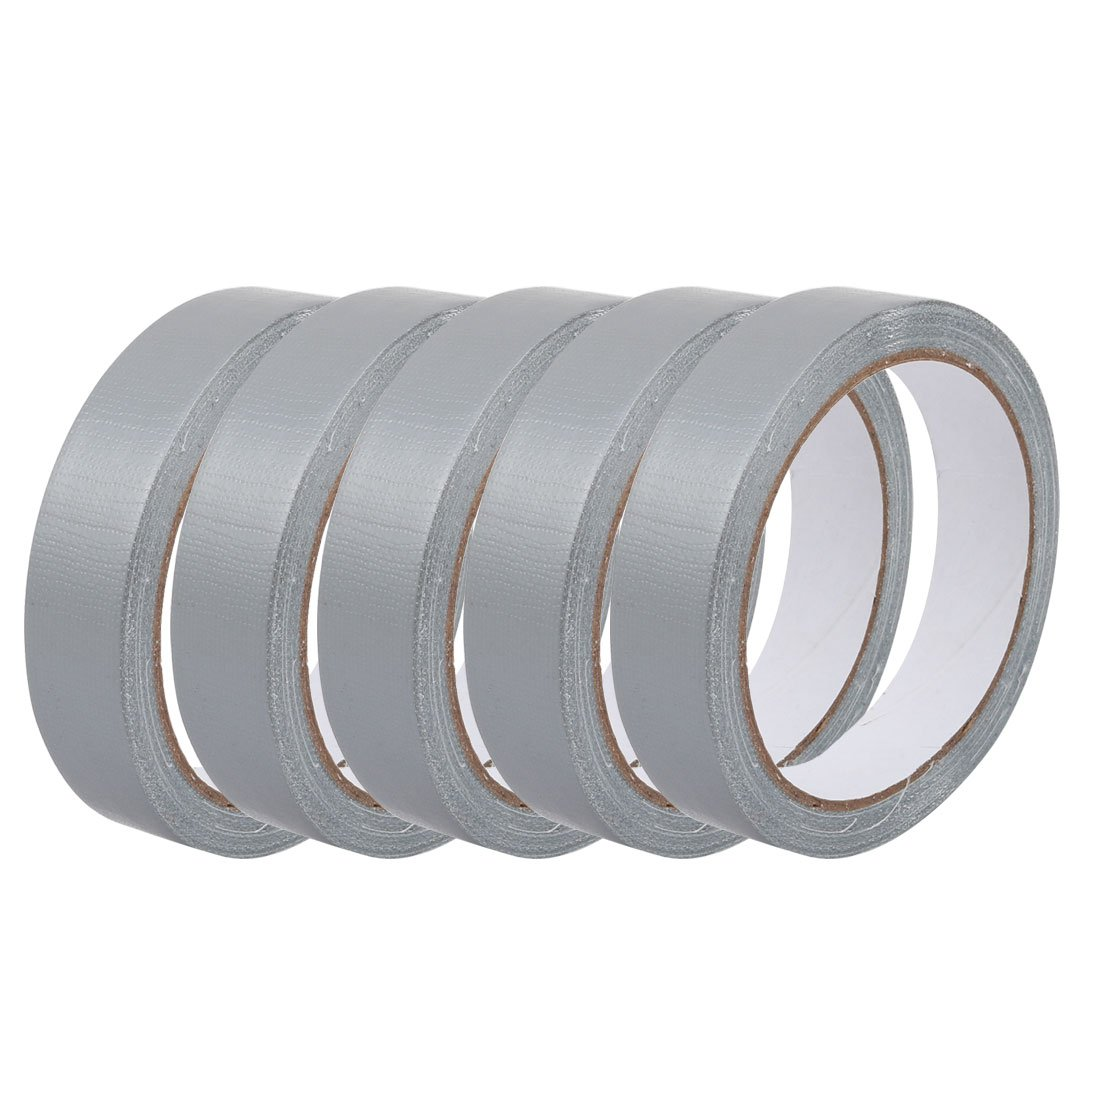 uxcell 5Pcs Gray Single Sided Safety Marking Carpet Tape 0.8 Inch x 11 Yards